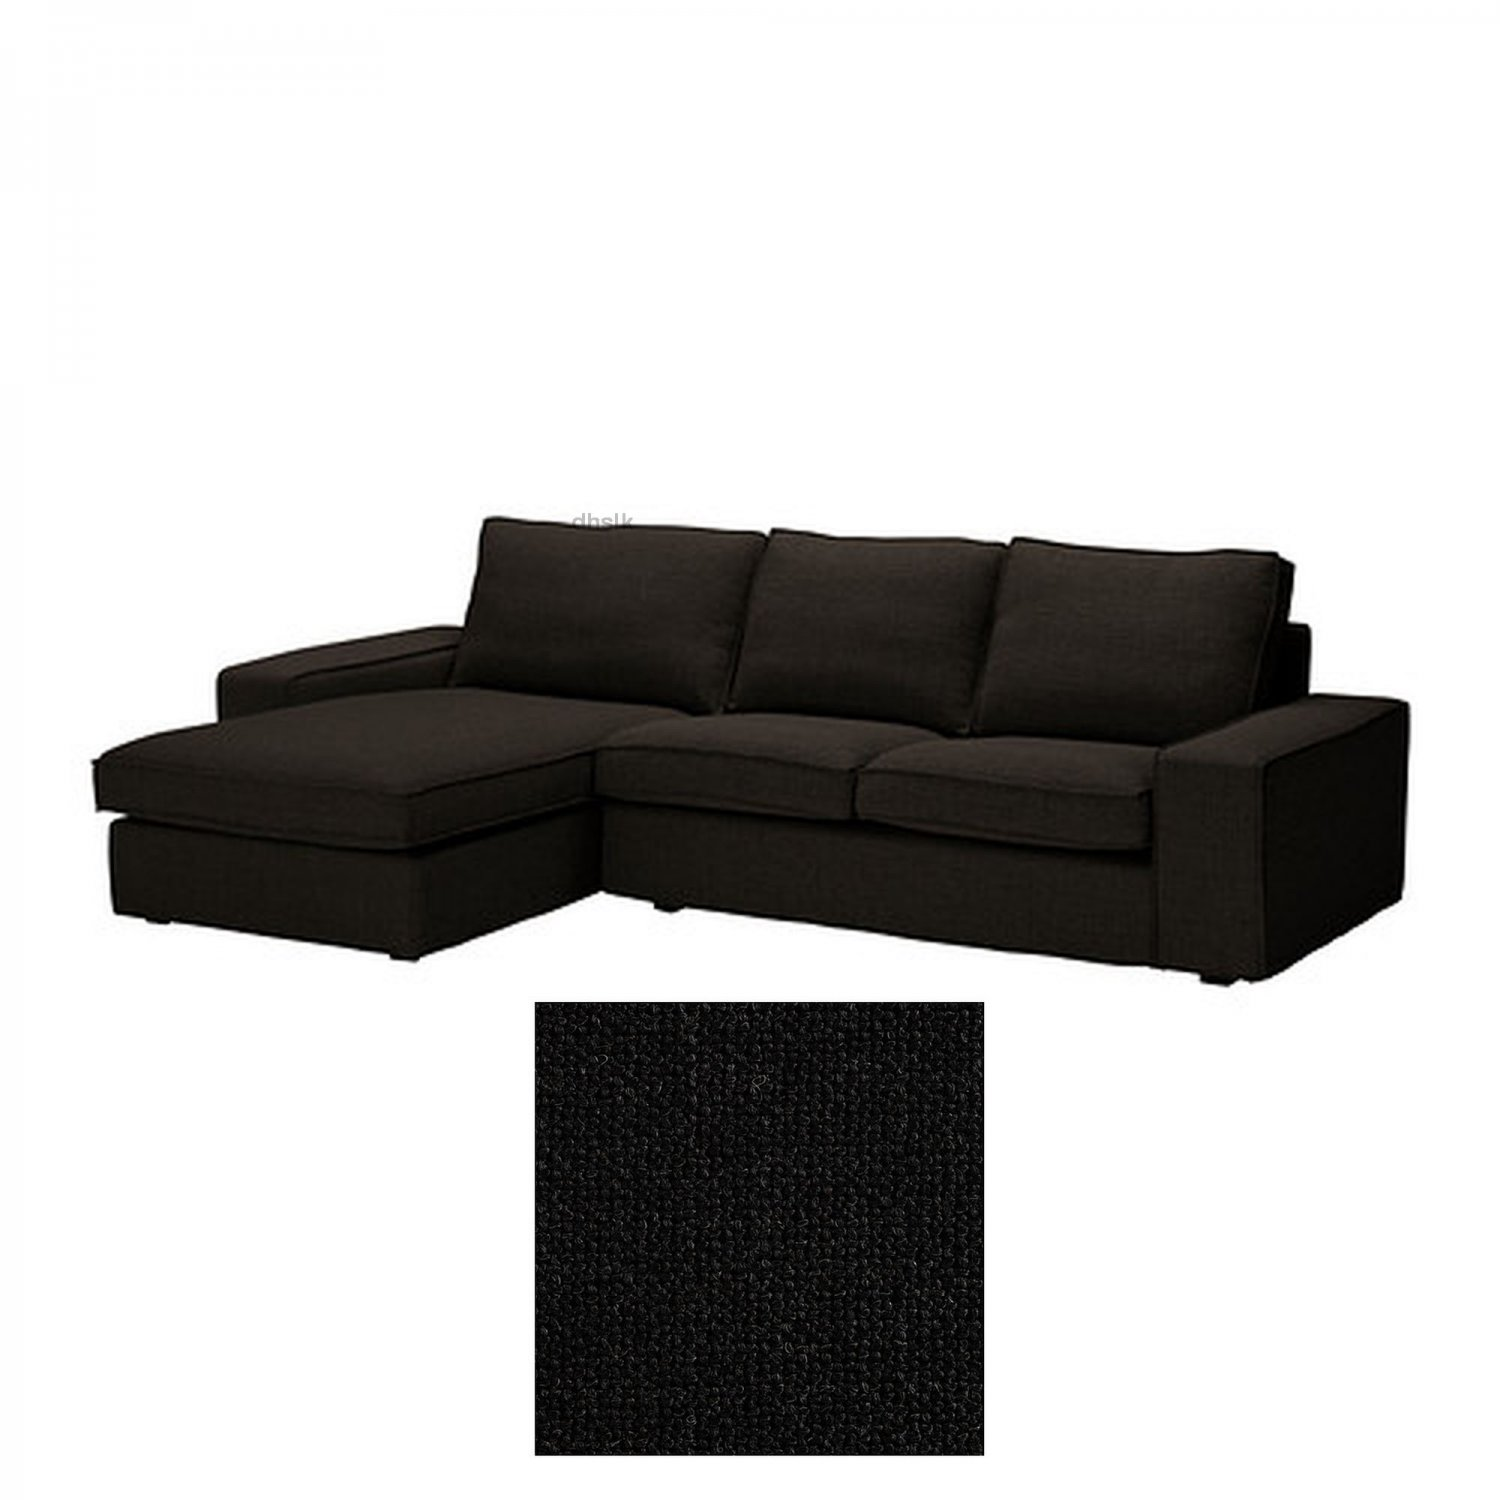 Ikea Kivik 2 Seat Loveseat Sofa W Chaise Longue Slipcover Cover Teno Black Ten